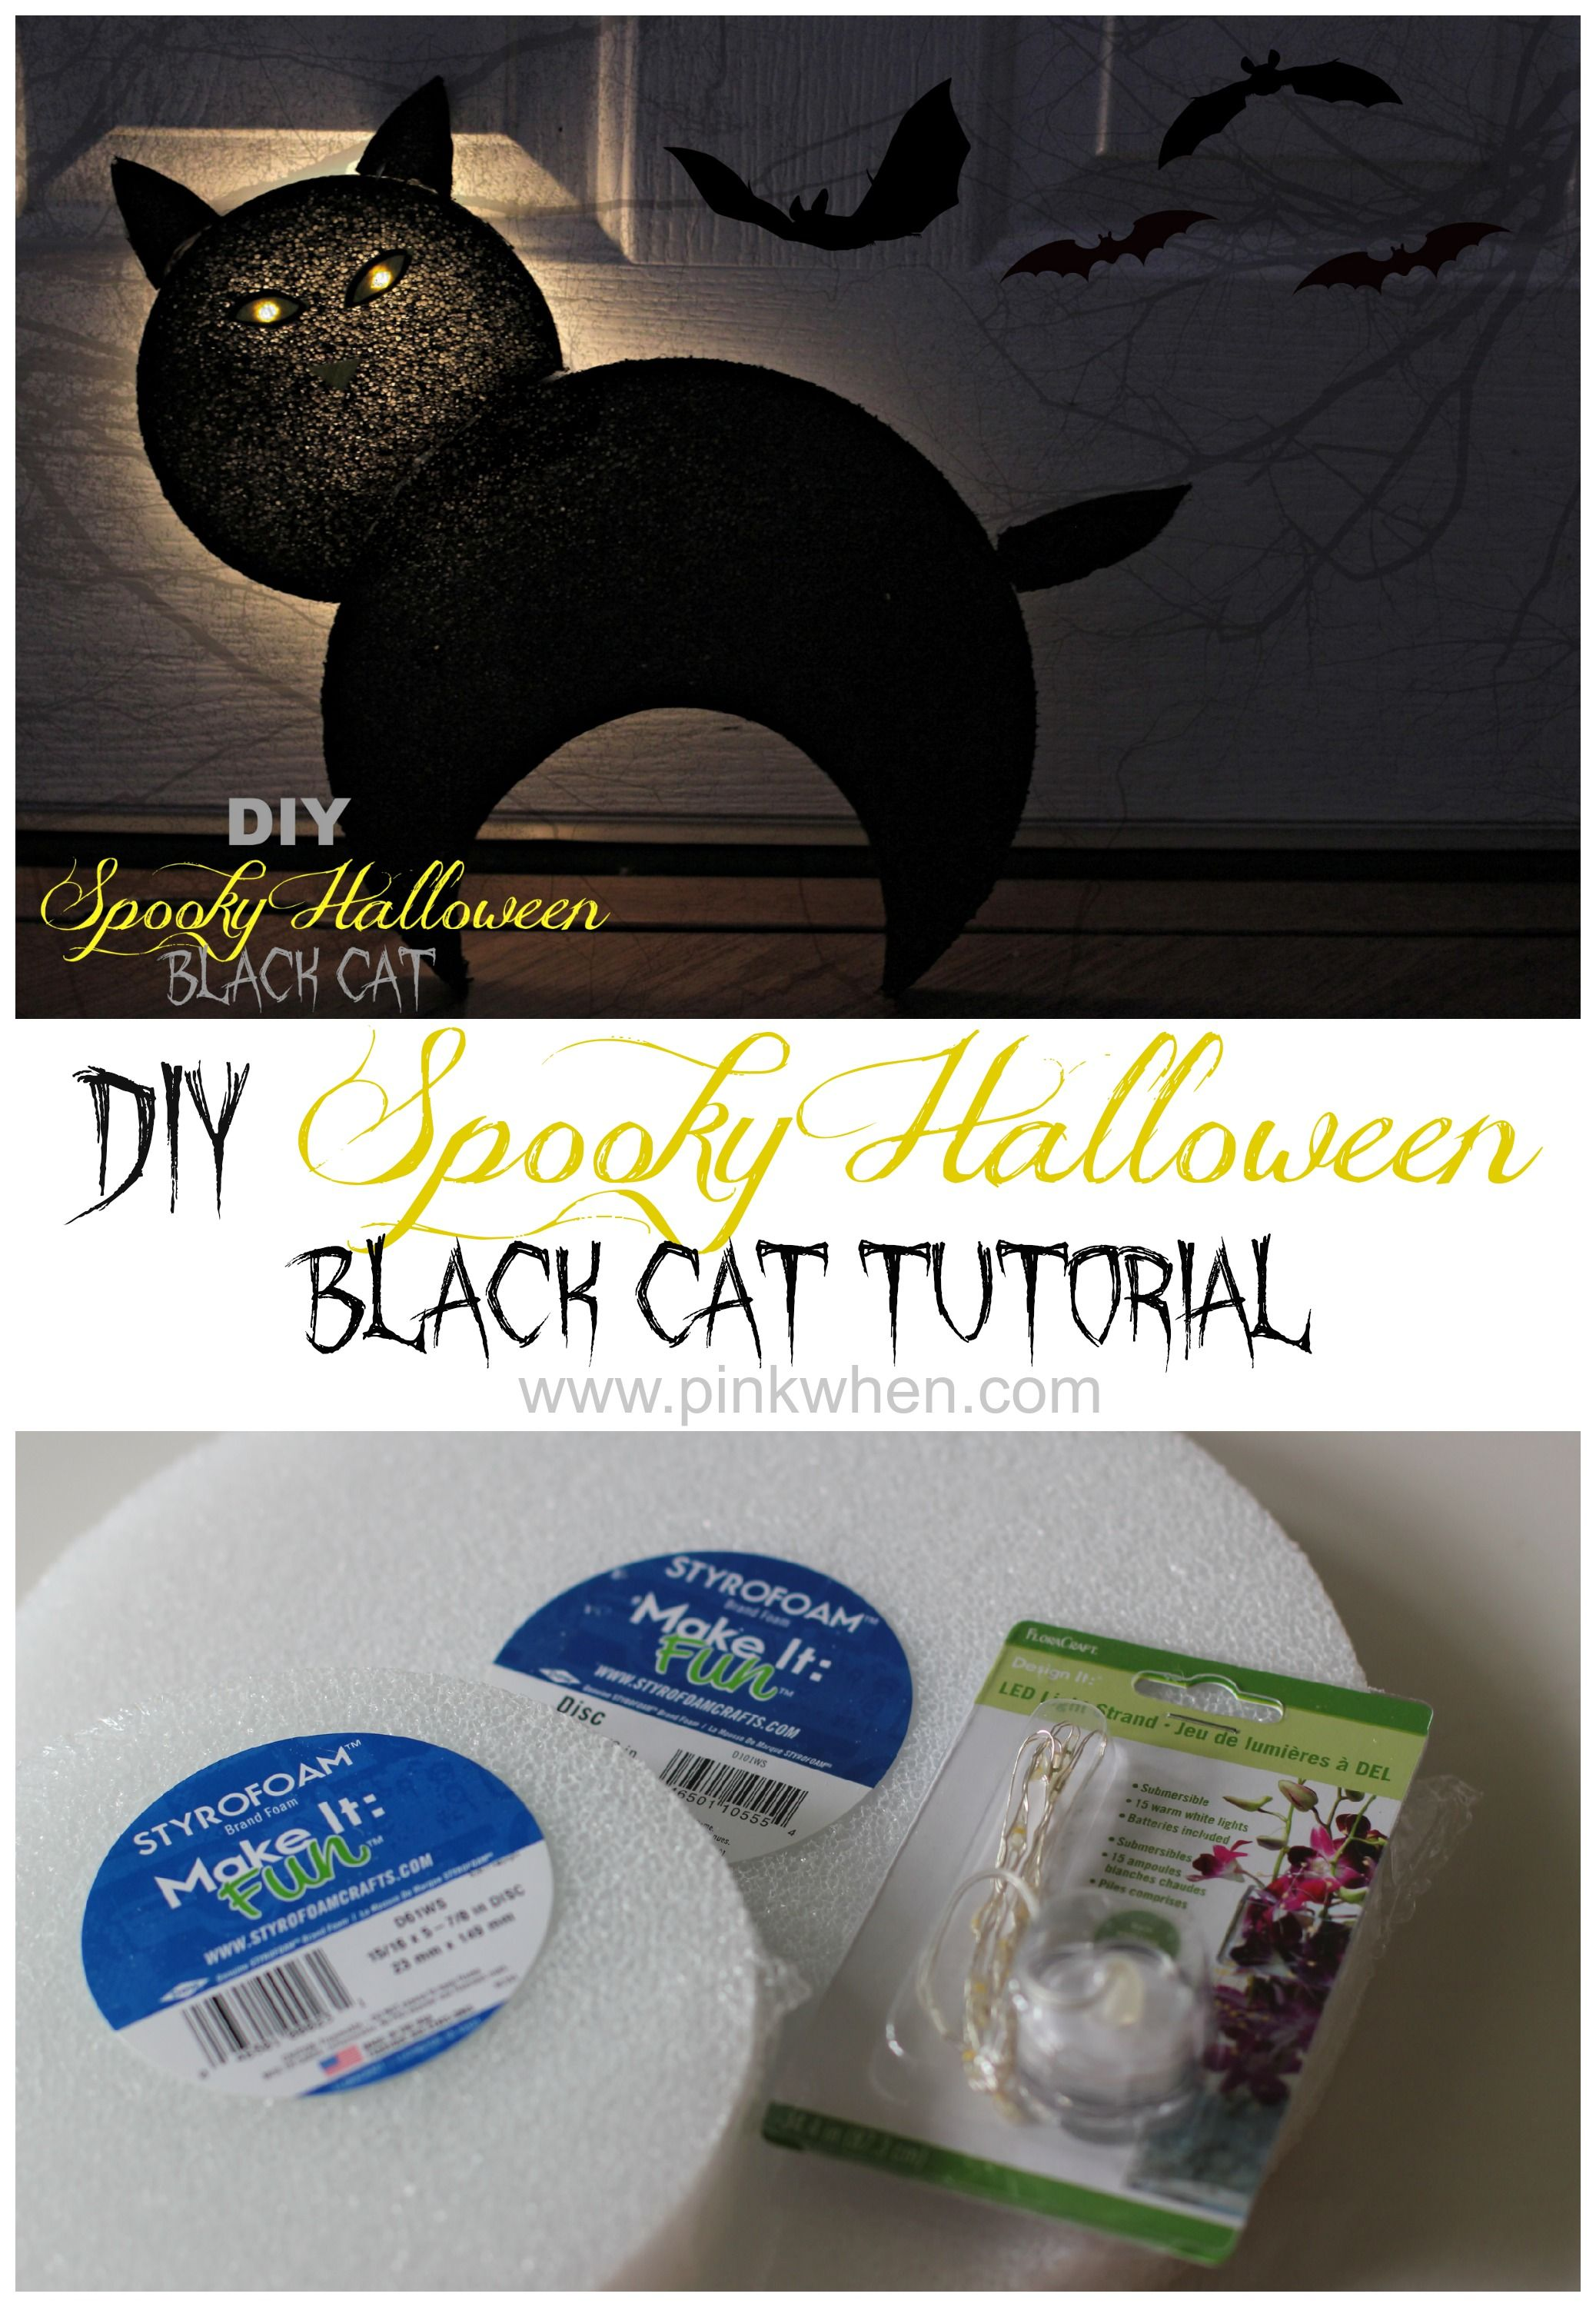 DIY Spooky Halloween Black Cat Halloween black cat, Spooky - Spooky Halloween Decorations